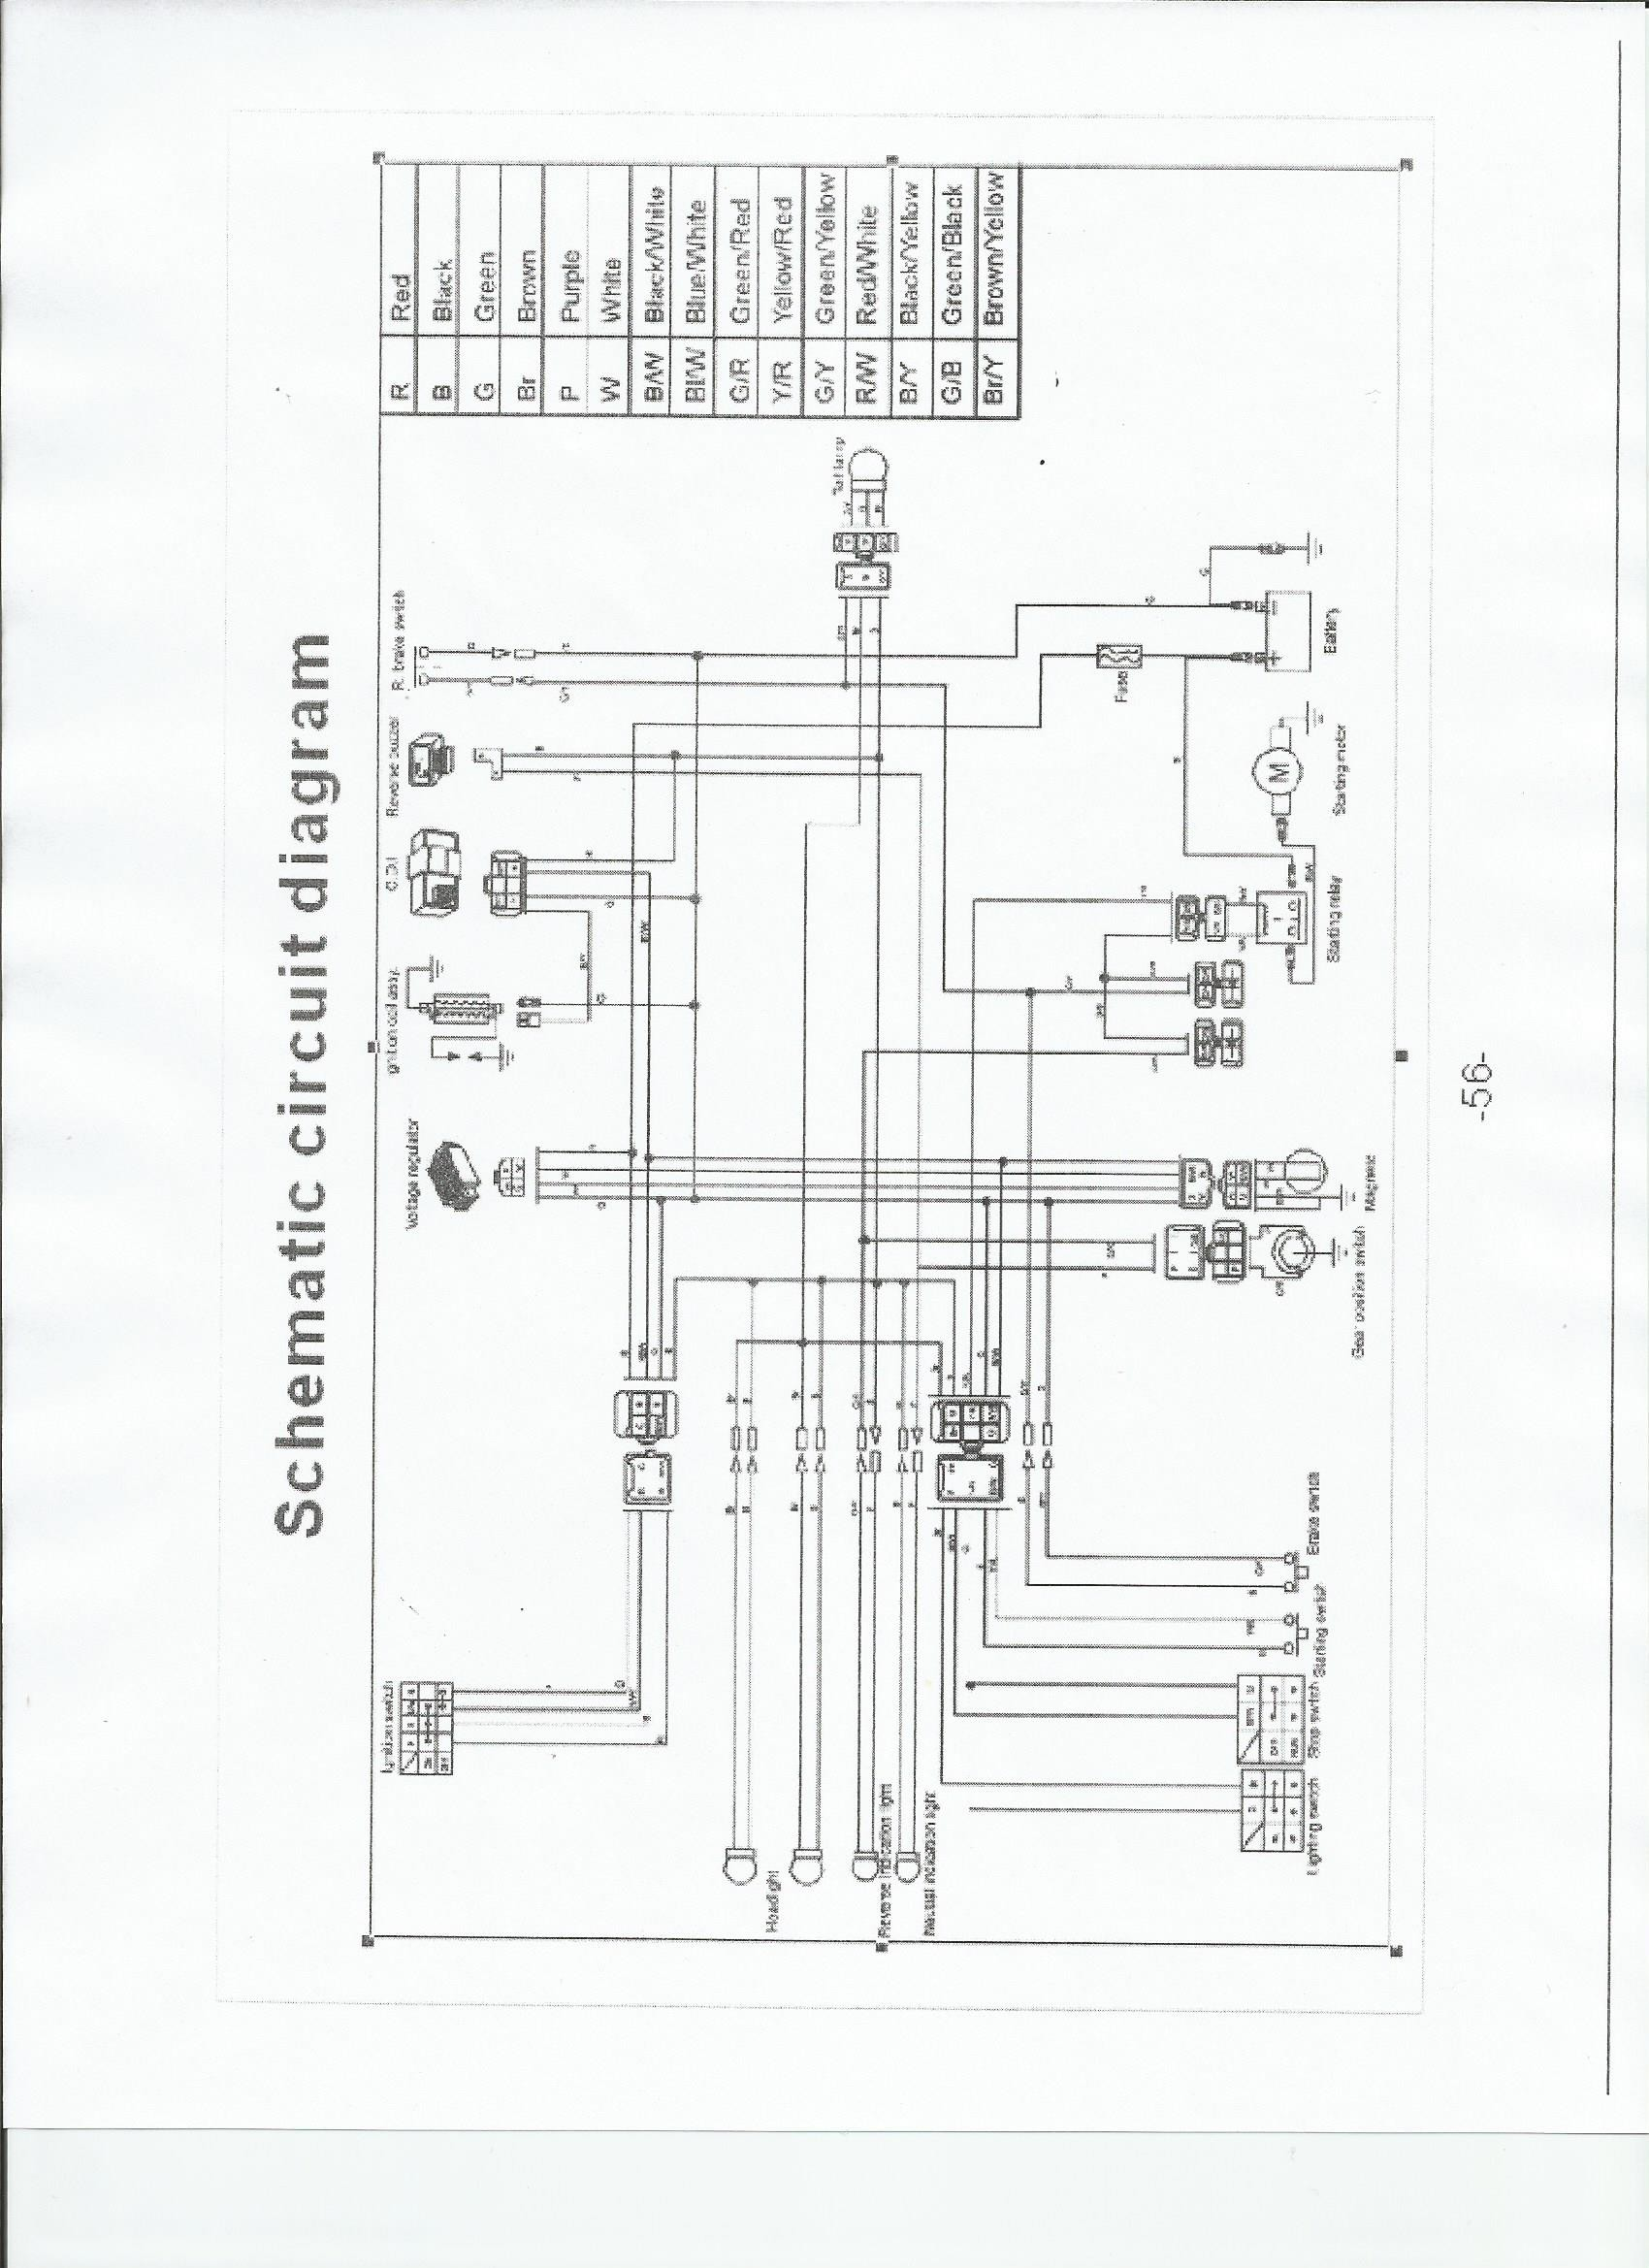 Swell Kazuma Go Kart Wiring Diagram Today Diagram Data Schema Wiring Digital Resources Remcakbiperorg